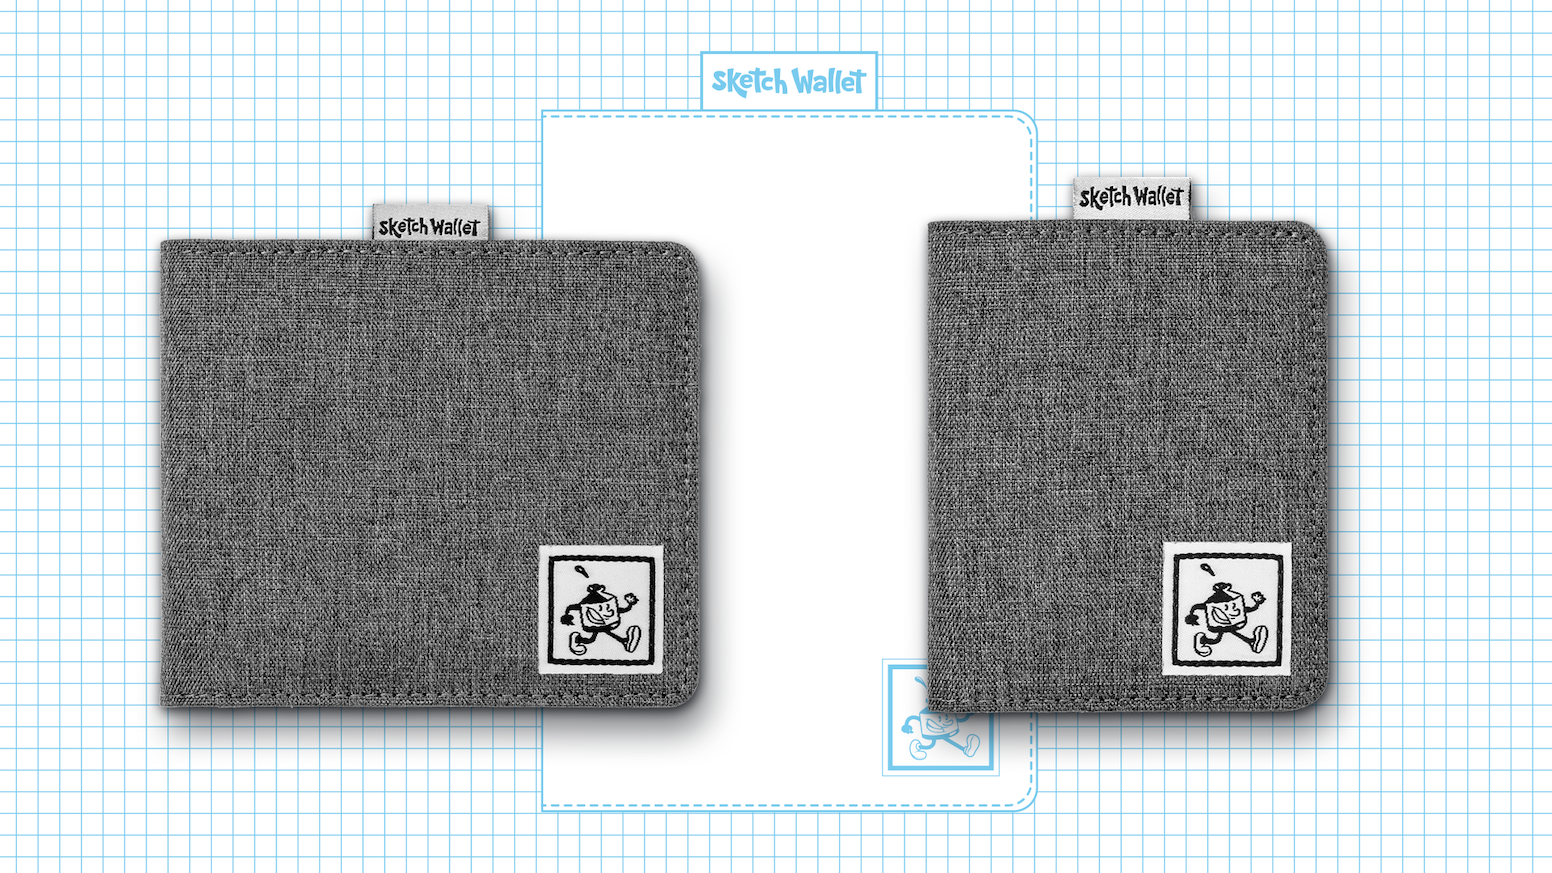 Two new smaller sized Sketch Wallets